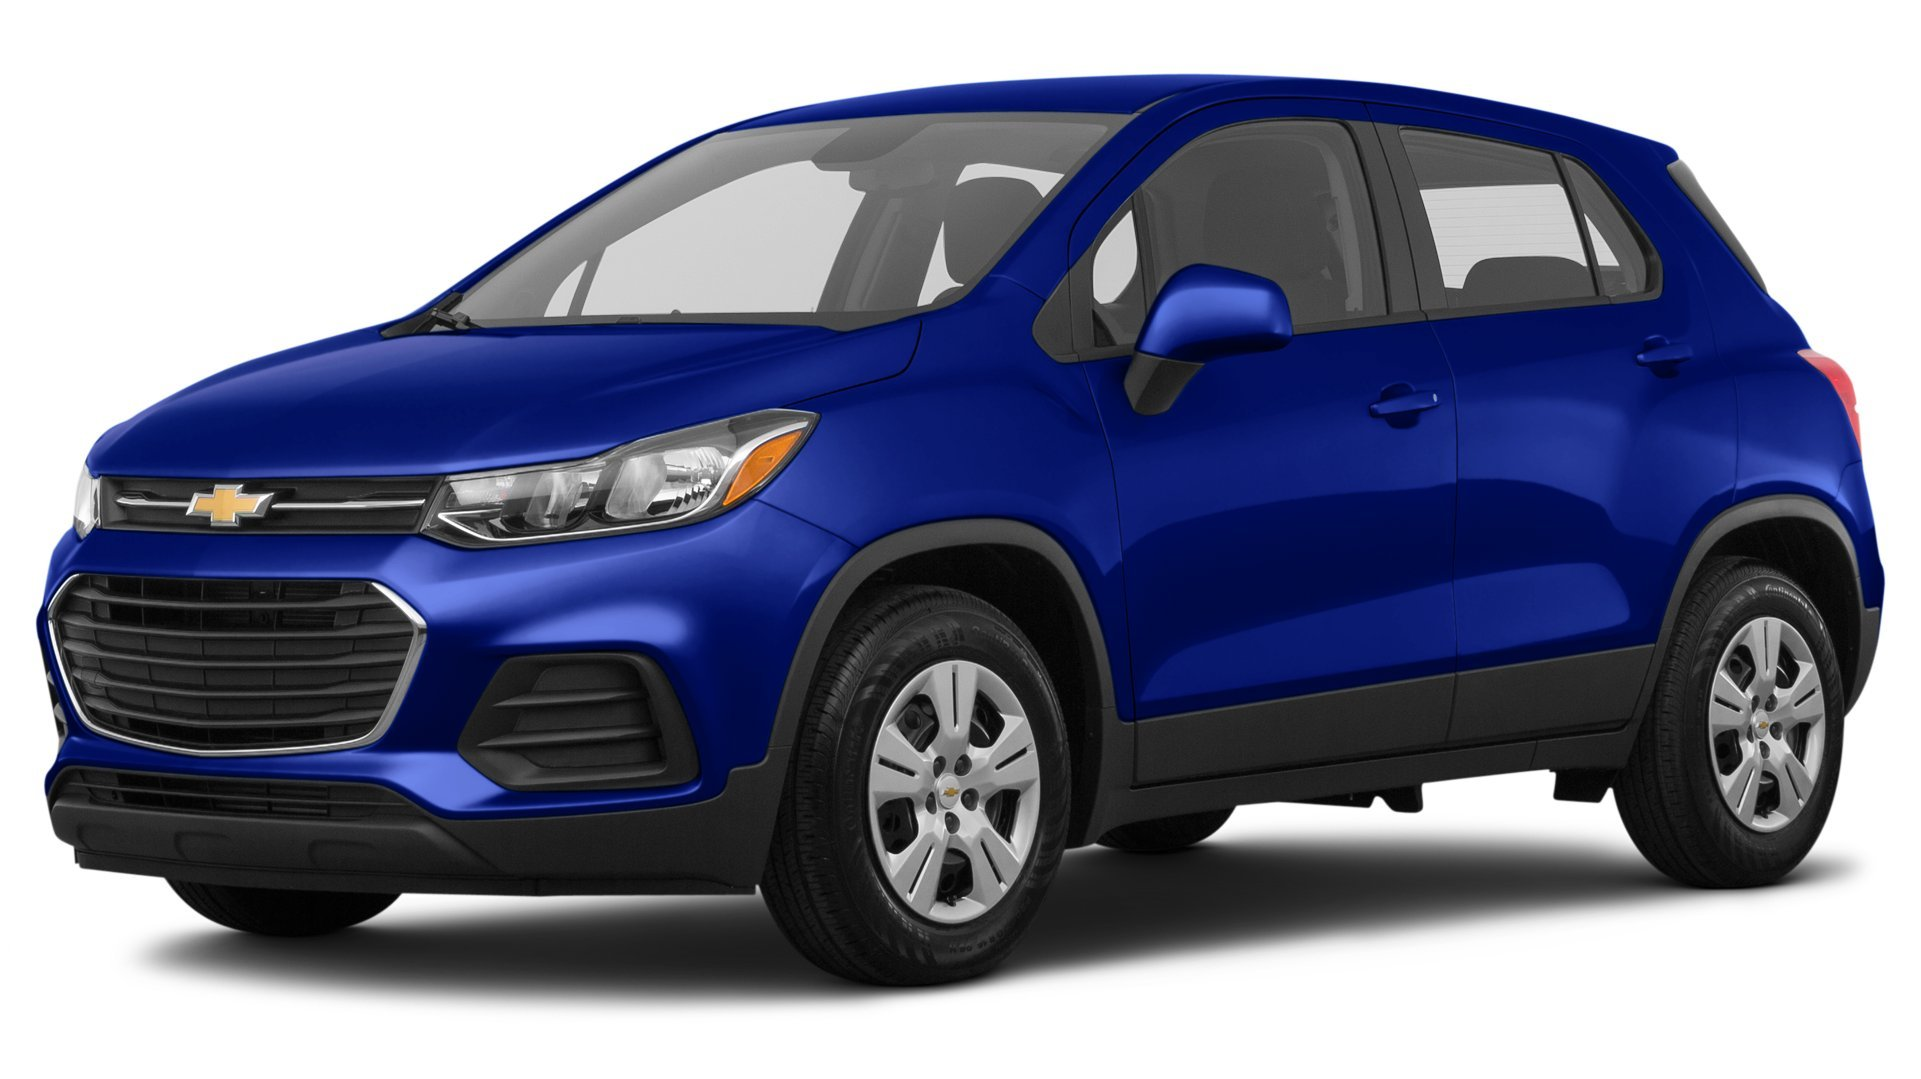 2017 chevrolet trax reviews images and specs vehicles. Black Bedroom Furniture Sets. Home Design Ideas